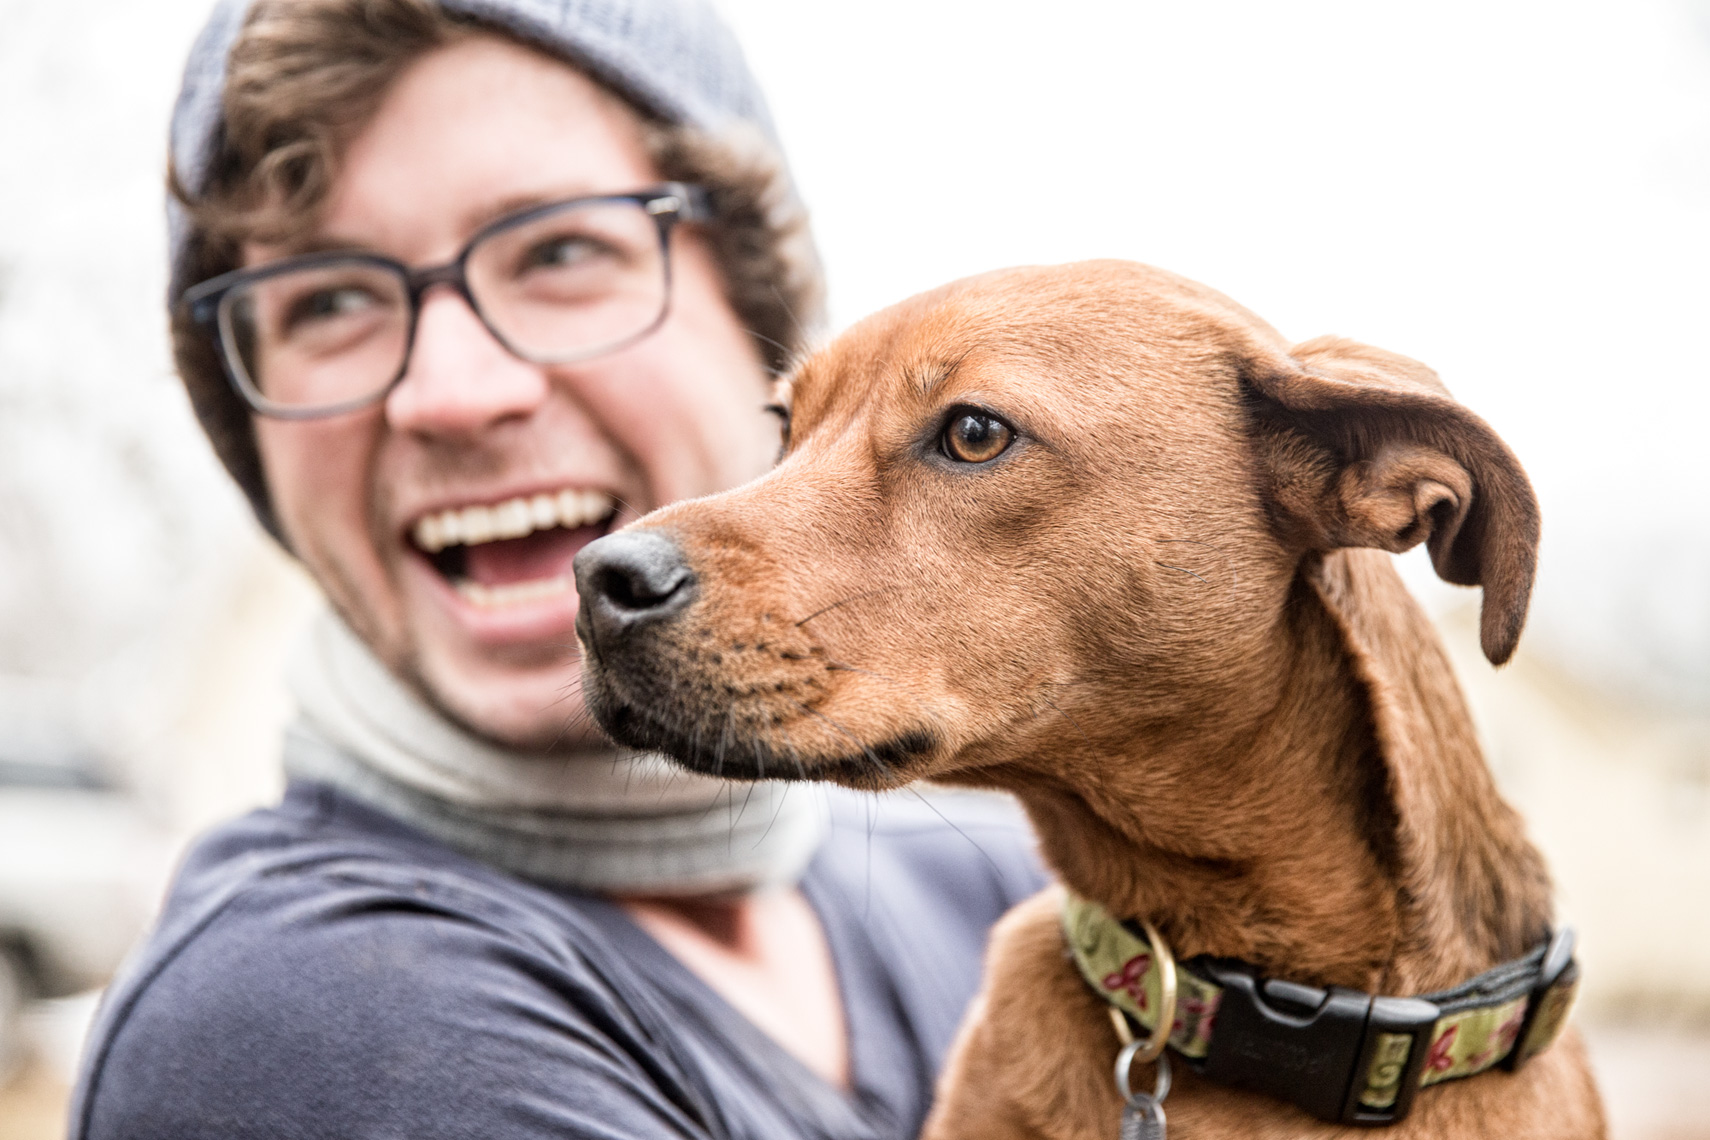 Los Angeles Dog Photography, Michael Brian, Purina ONE, Man laughing with dog in arms, Zeus Jones, 28 Day Challenge, Asheville, North Carolina